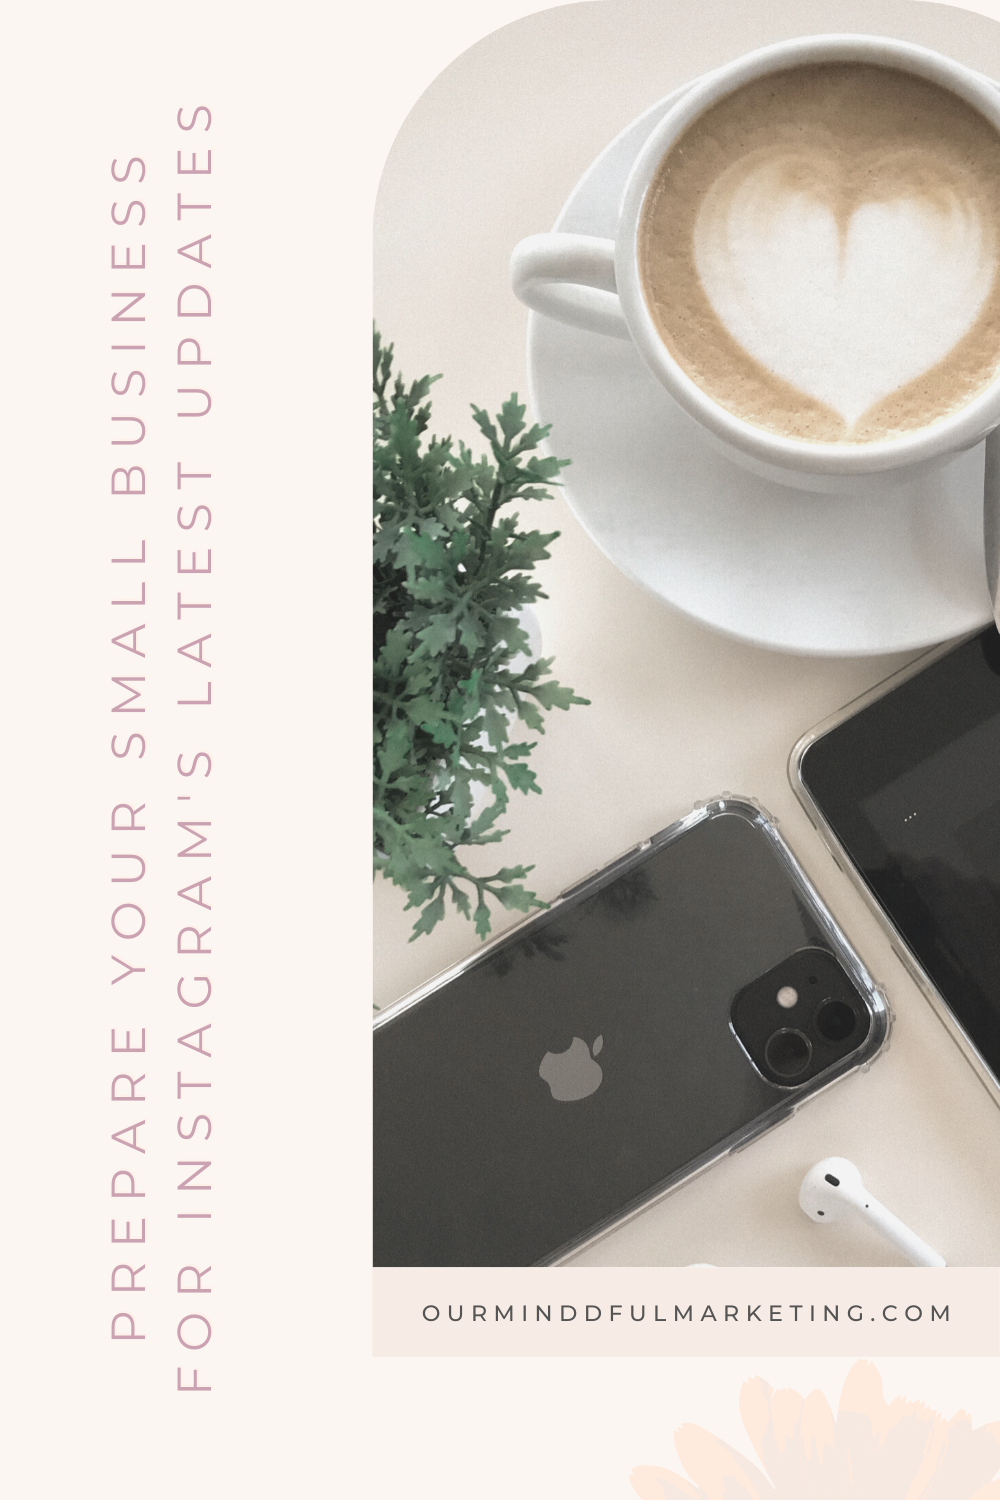 Prepare Your Small Business for Instagram's Latest Updates